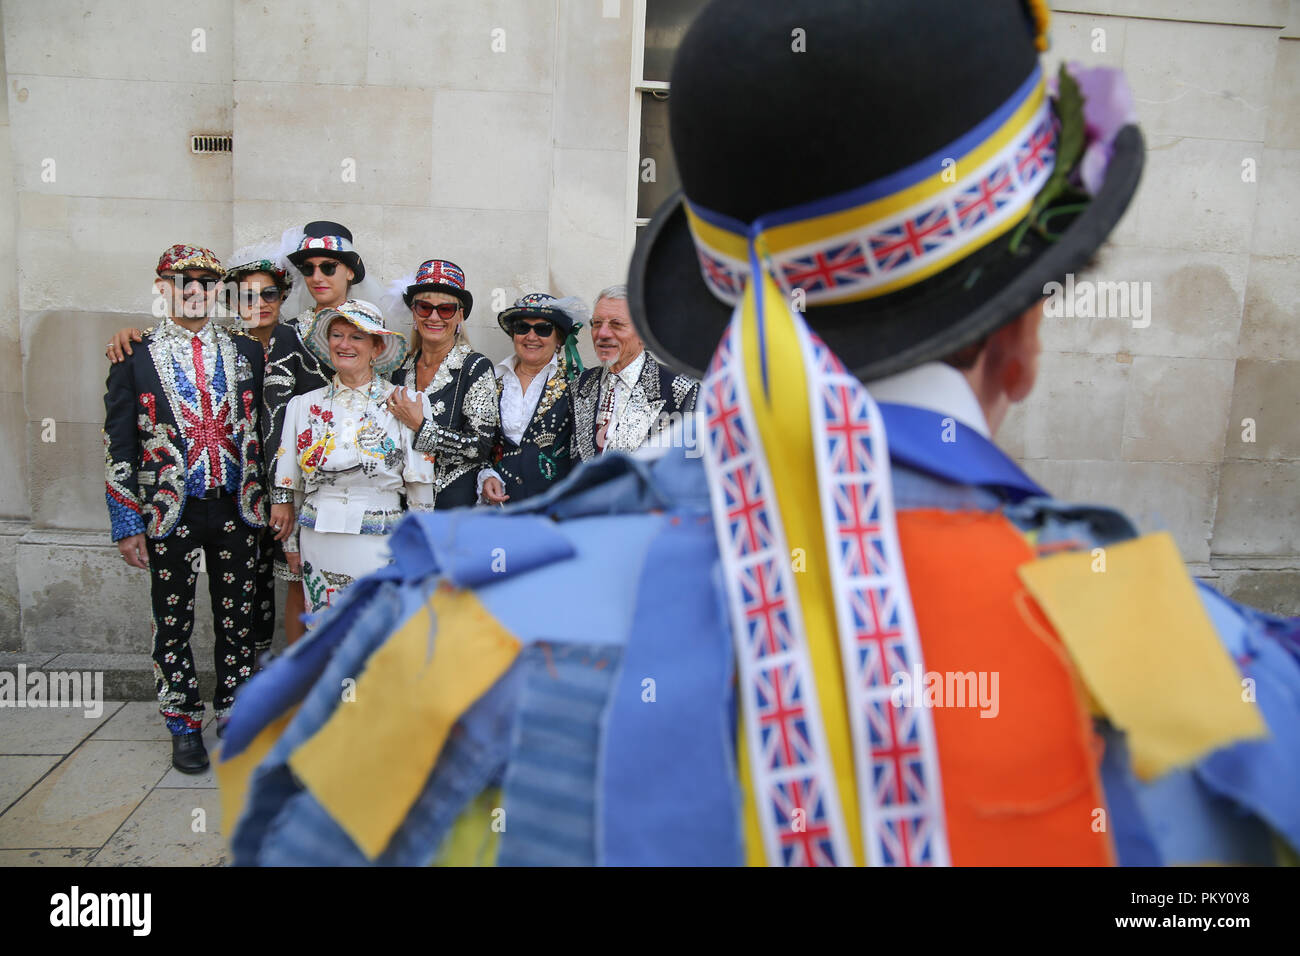 London UK  16 September 2018 Pearly Kings and Queens Harvest Festival at Guildhall Yard,Dressed in their best dark suits covered in hundreds of bright pearl buttons, the Pearly Kings and Queens of London got  together for the biggest event in the Pearly calendar, .@Paul Quezada-Neiman/Alamy Live Credit: Paul Quezada-Neiman/Alamy Live News Credit: Paul Quezada-Neiman/Alamy Live News Stock Photo